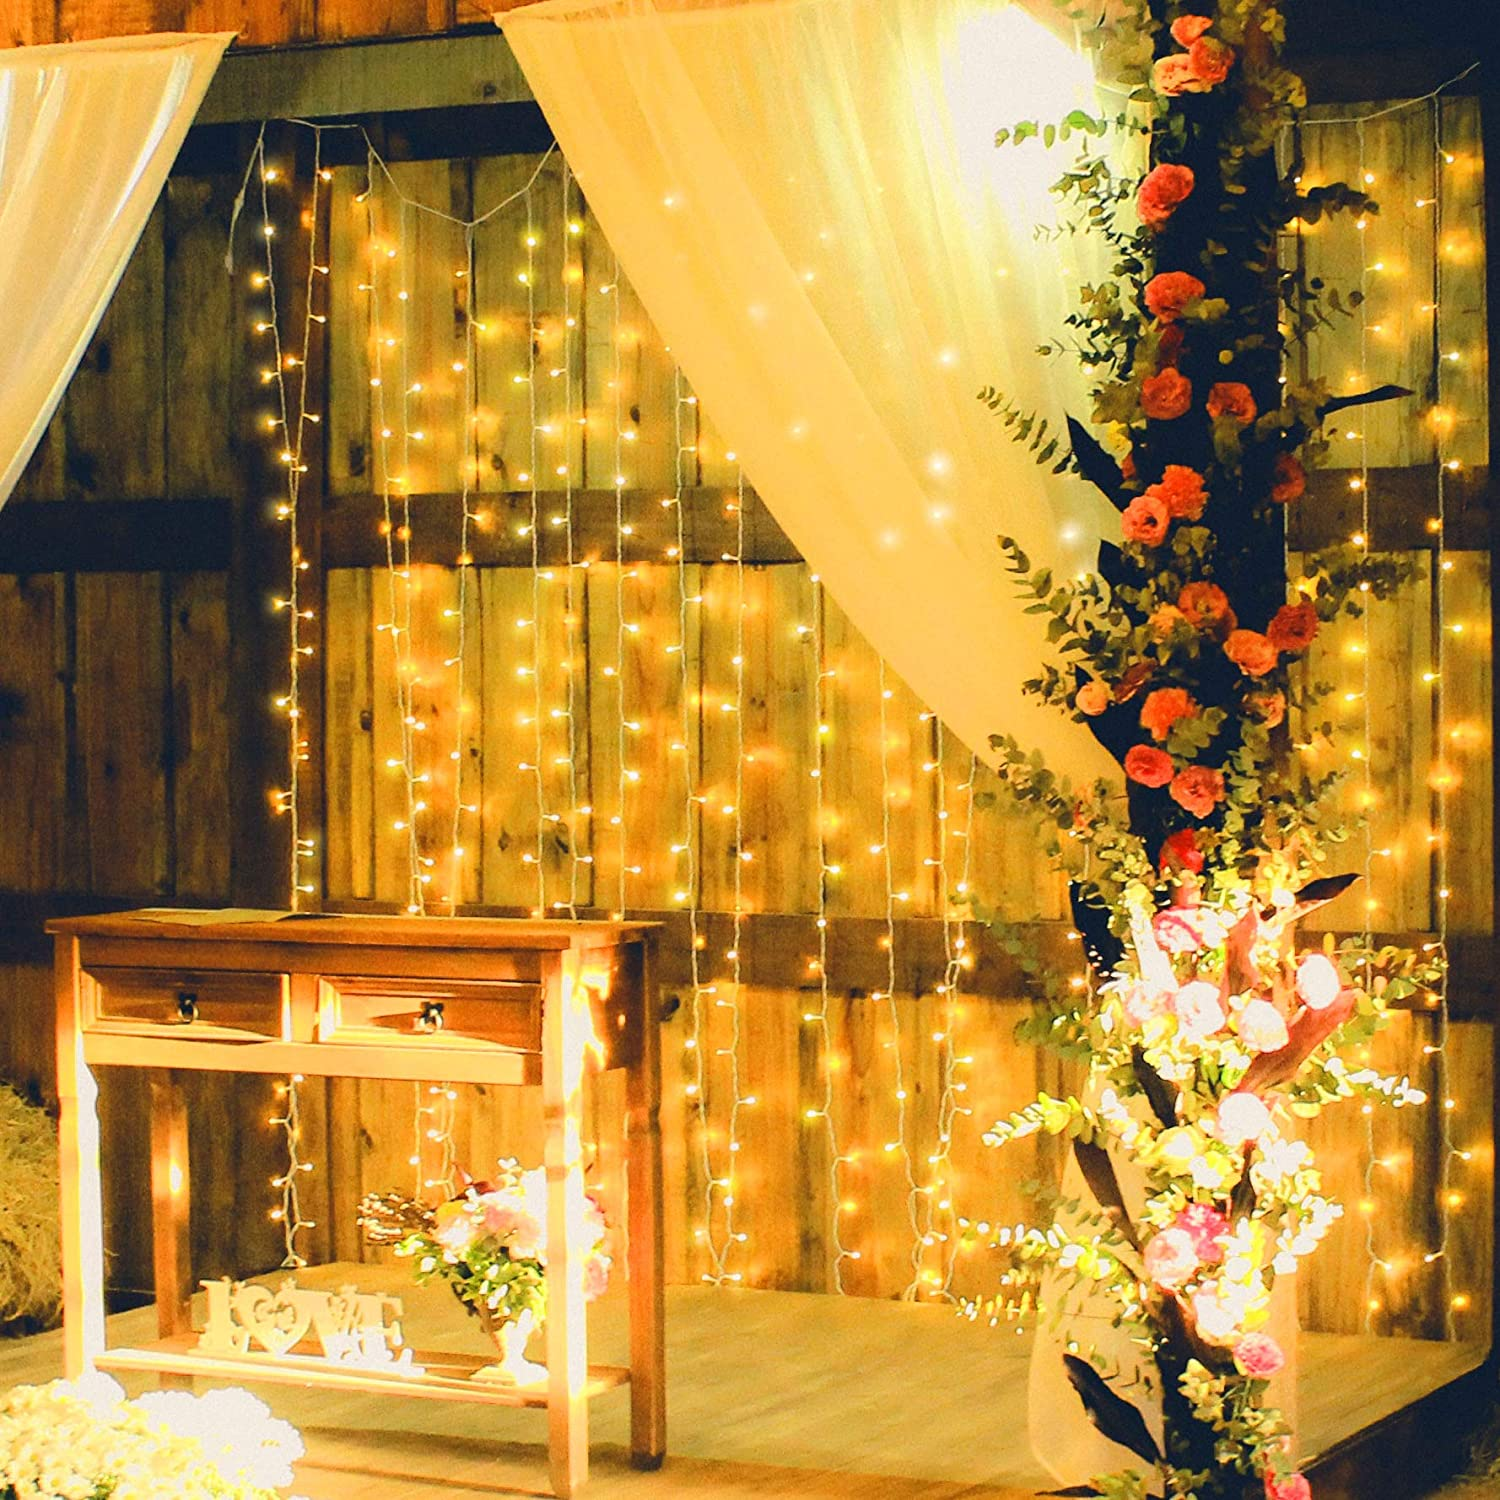 Merkury Innovations 300 LED Curtain Lights w/ Adapter, Hanging LED String Lights,10 Strands, 6.5 ft x 9.8 ft, UL Adapter with 8 Light Modes, Indoor and Outdoor Use